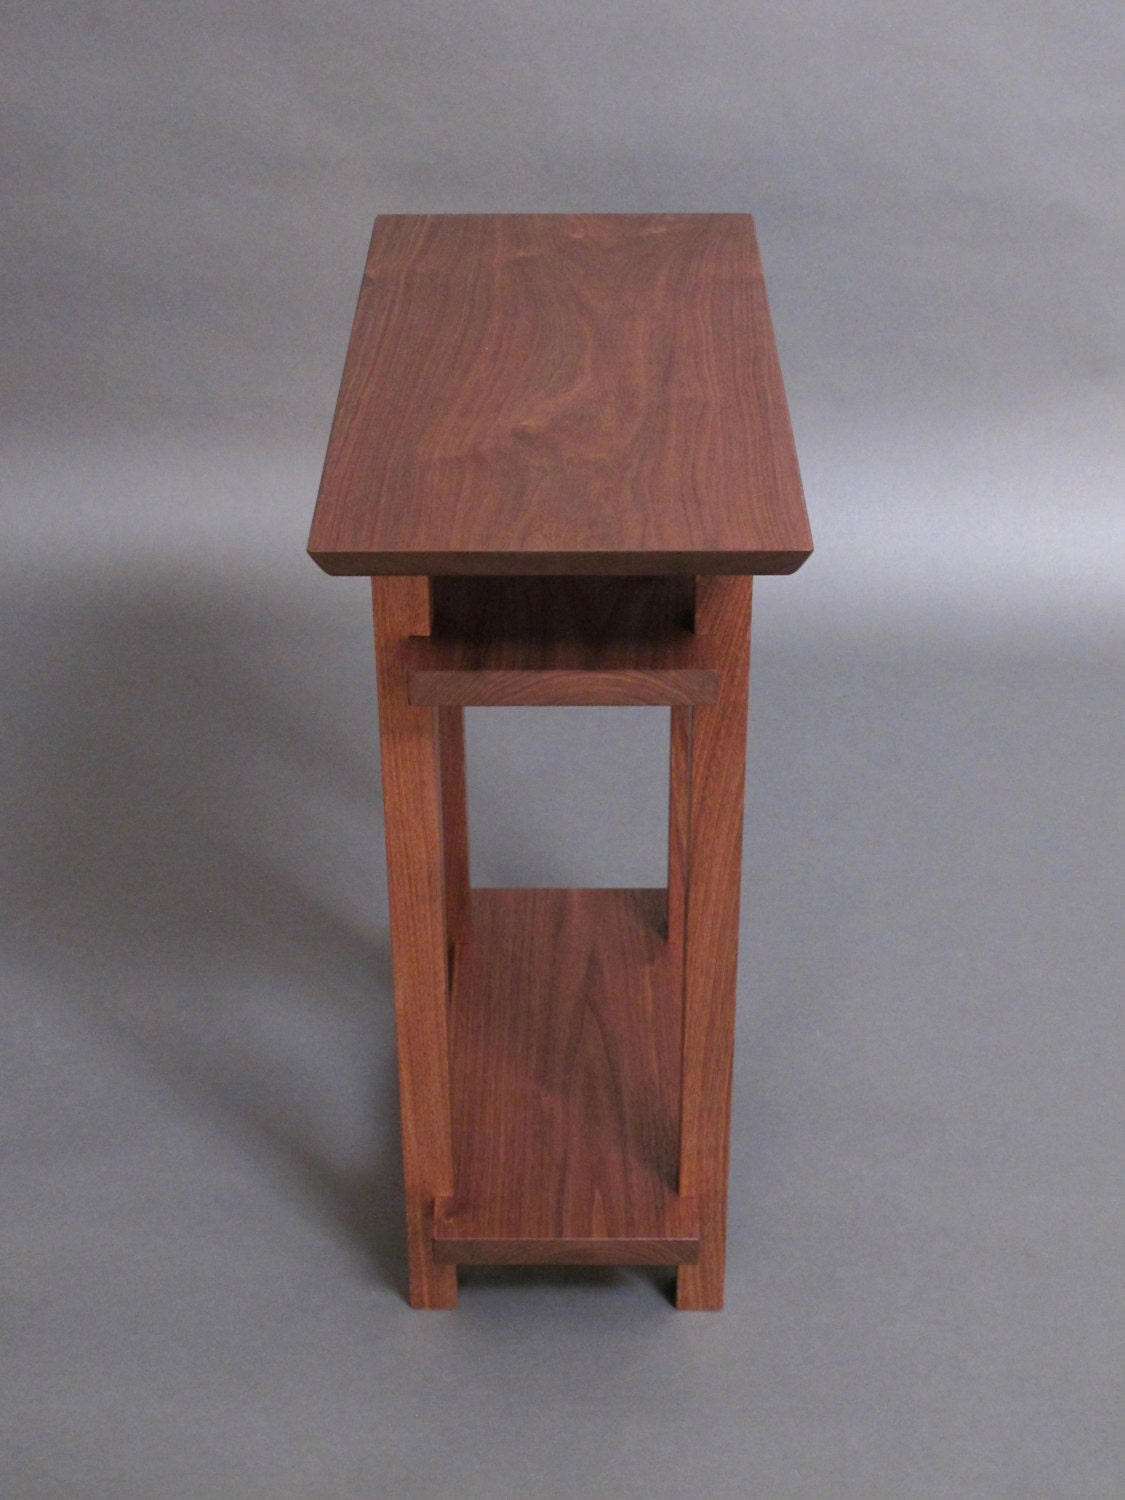 Small narrow wood table with two shelves small side table for Small wood end table